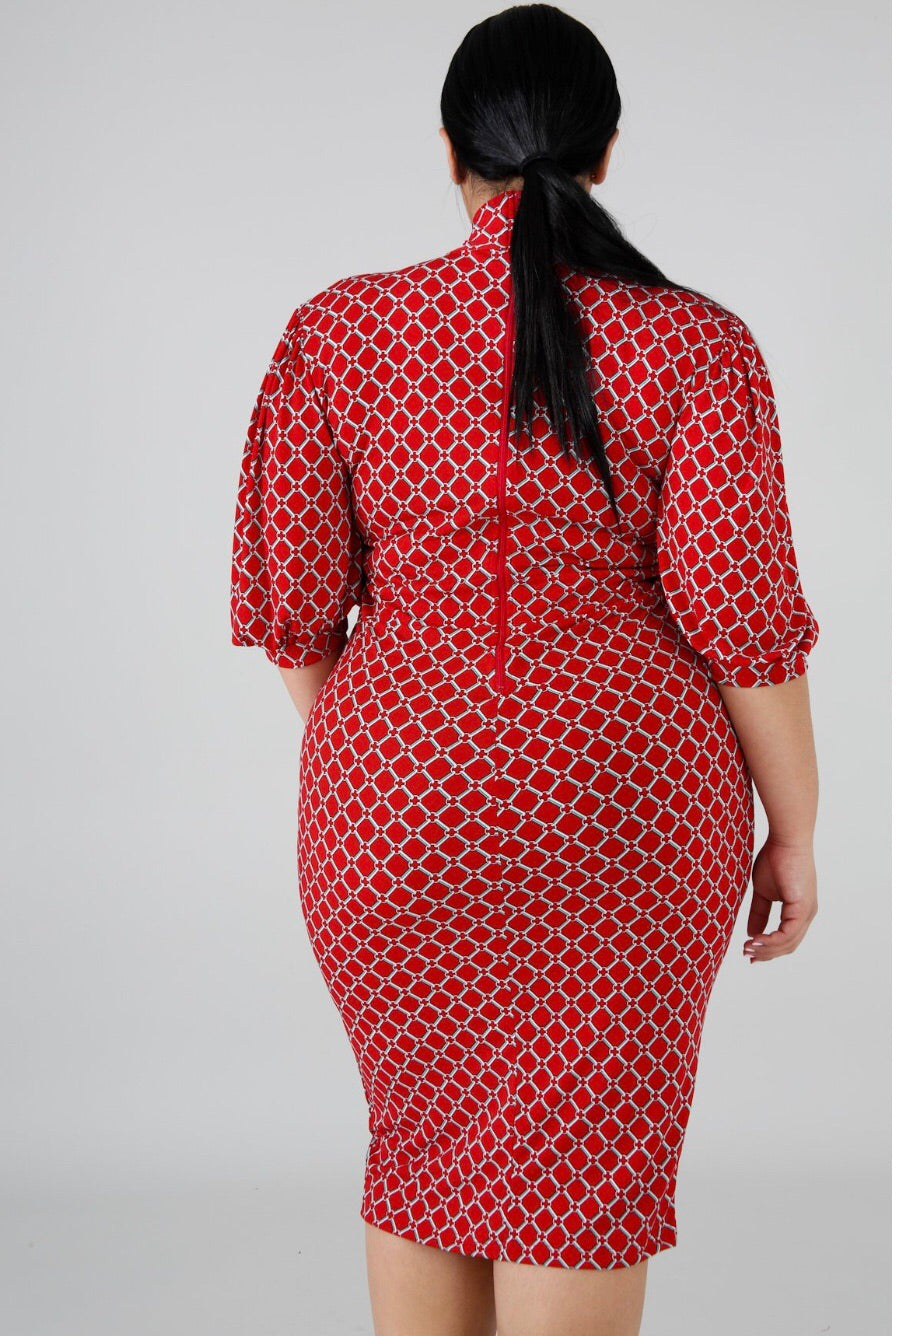 Kris Hot Red Plus size Mini Dress - Semai House Of fashion